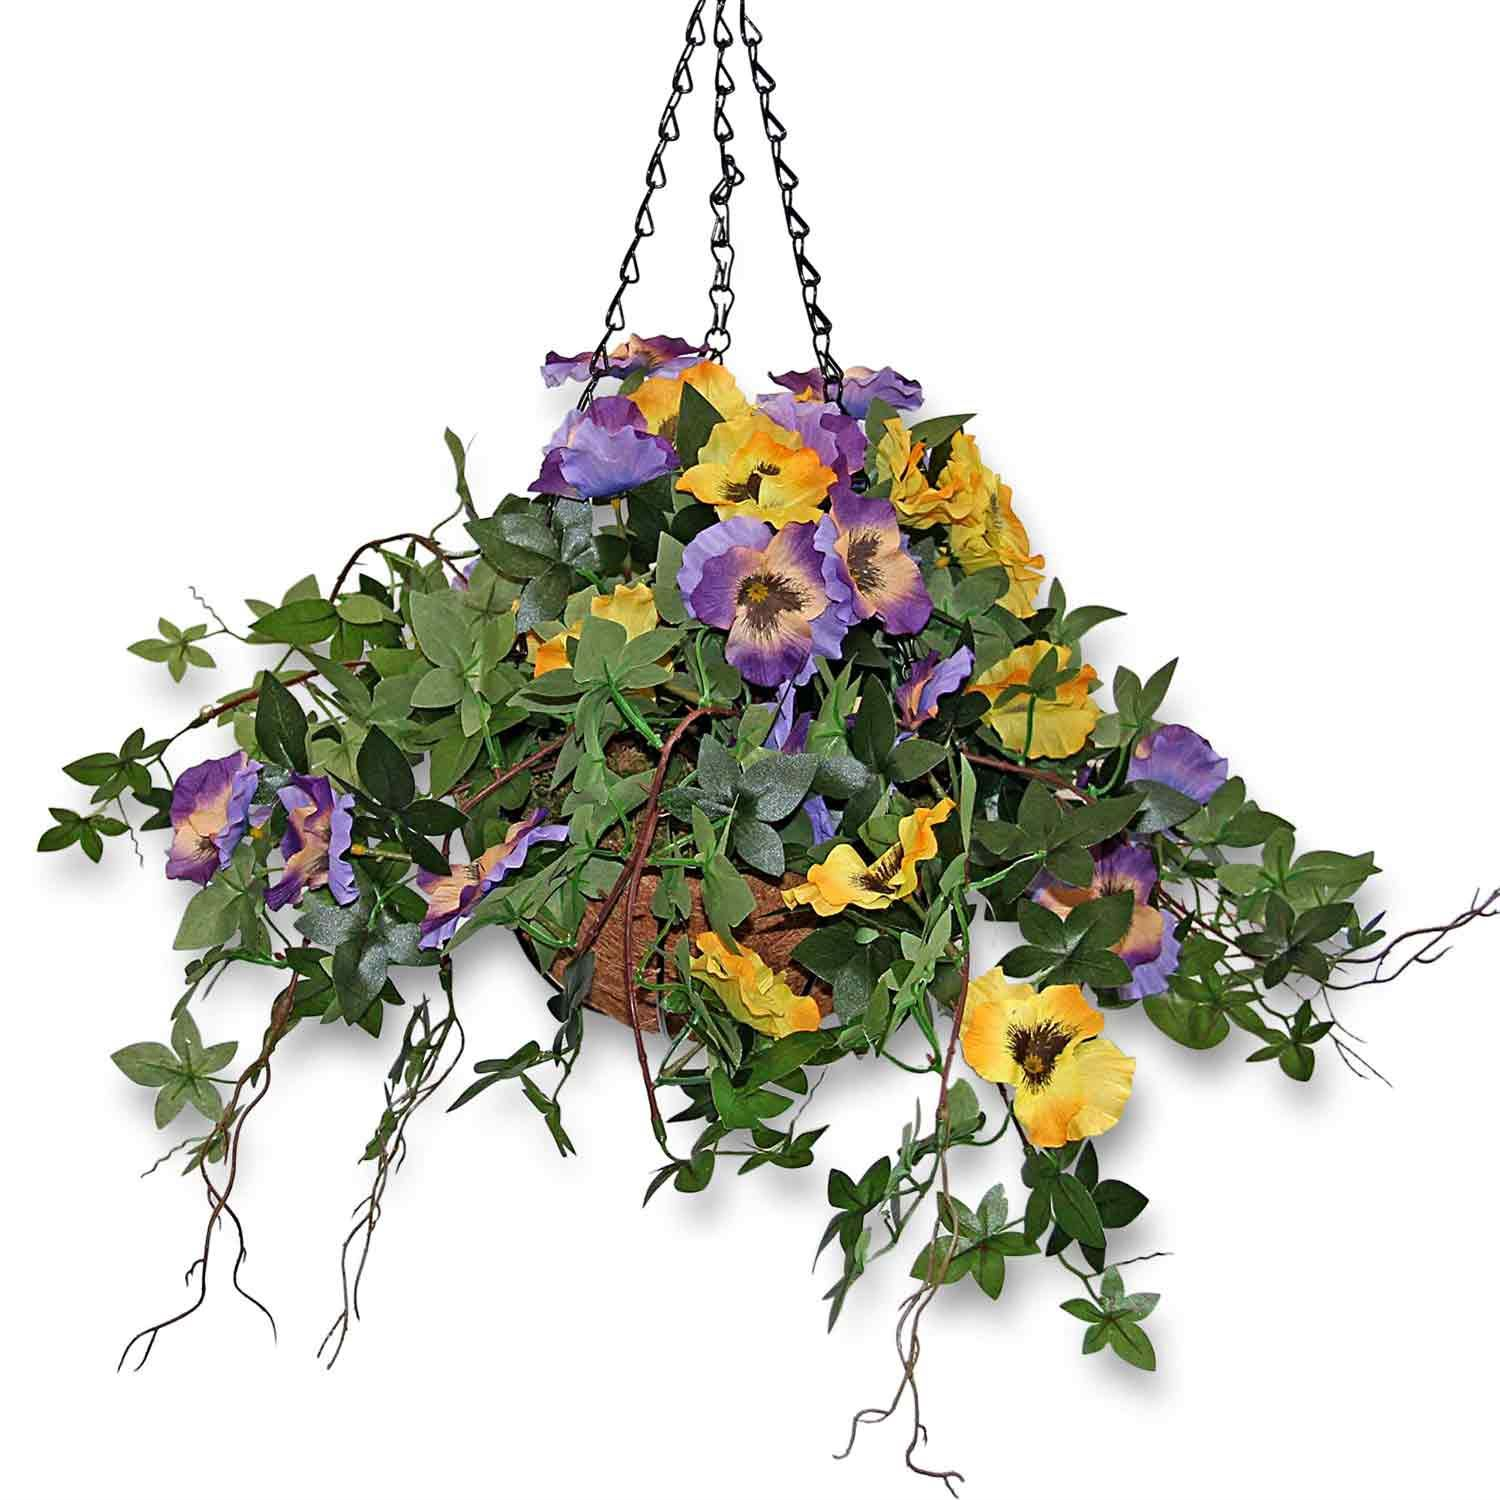 Artificial pansies trailing flowers hanging basket for indoor and artificial pansies trailing flowers hanging basket for indoor mightylinksfo